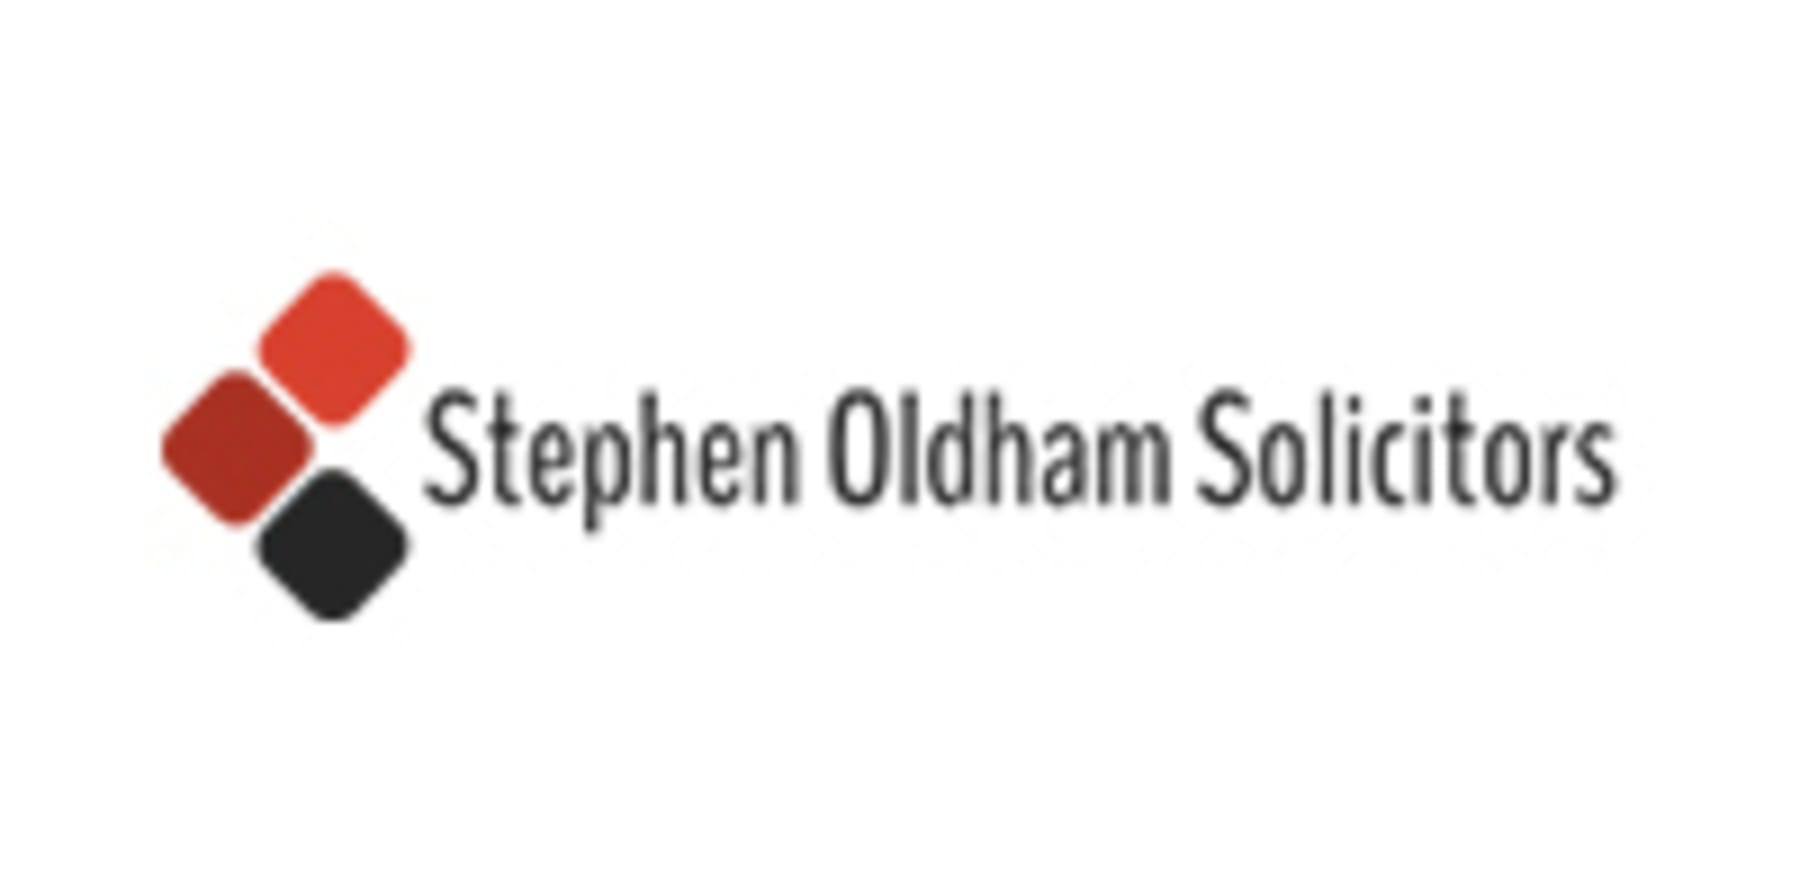 Stephen Oldham Driving Solicitors